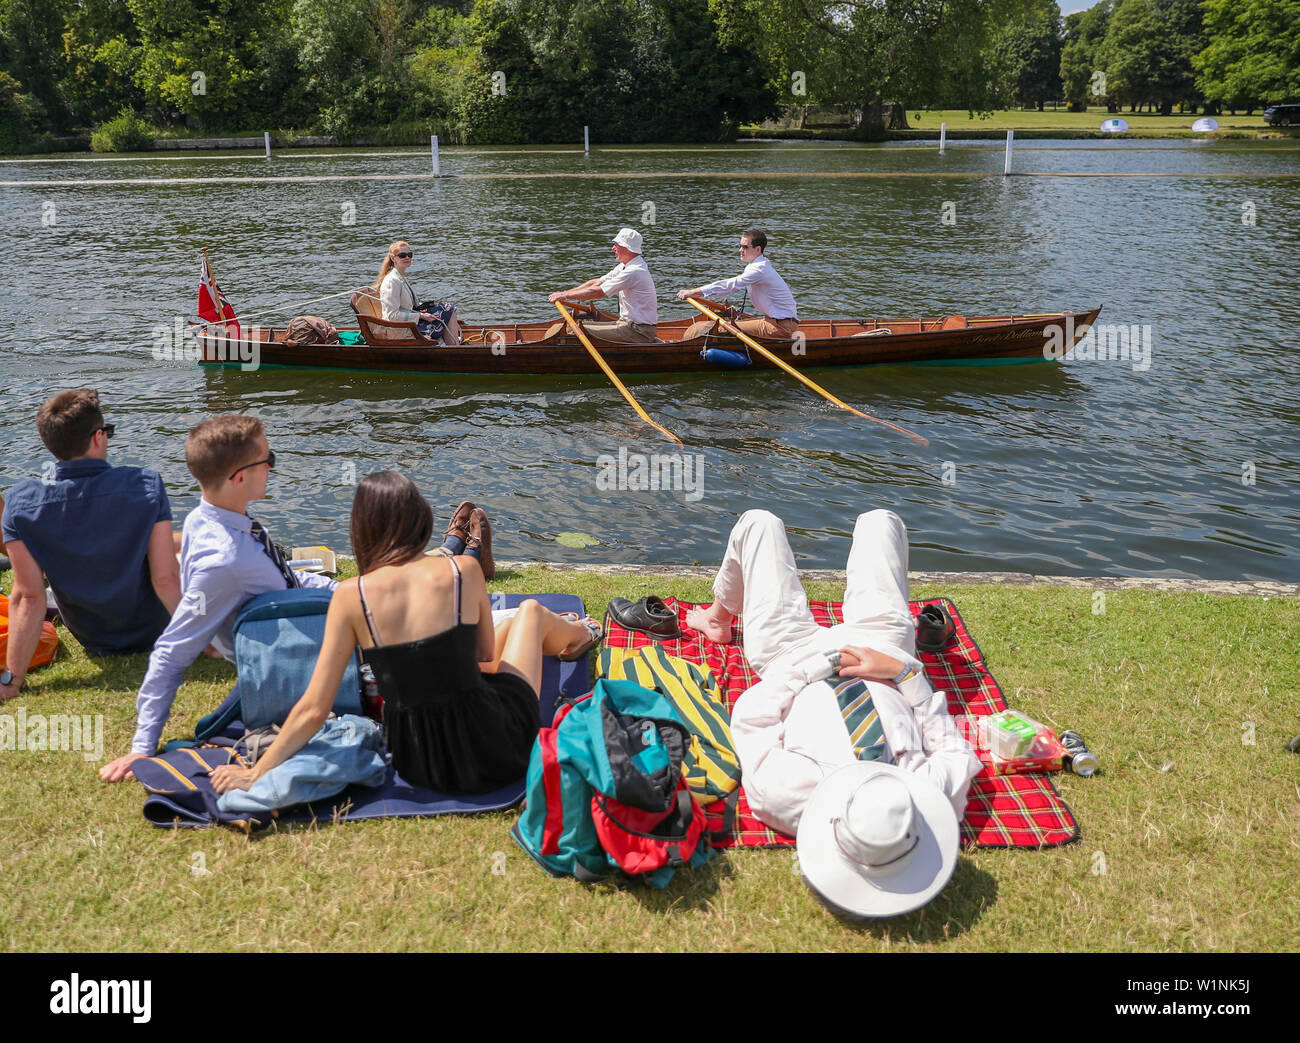 A rowing boat passes spectators on the river bank on the opening day of the 2019 Henley Royal Regatta alongside the river Thames. - Stock Image